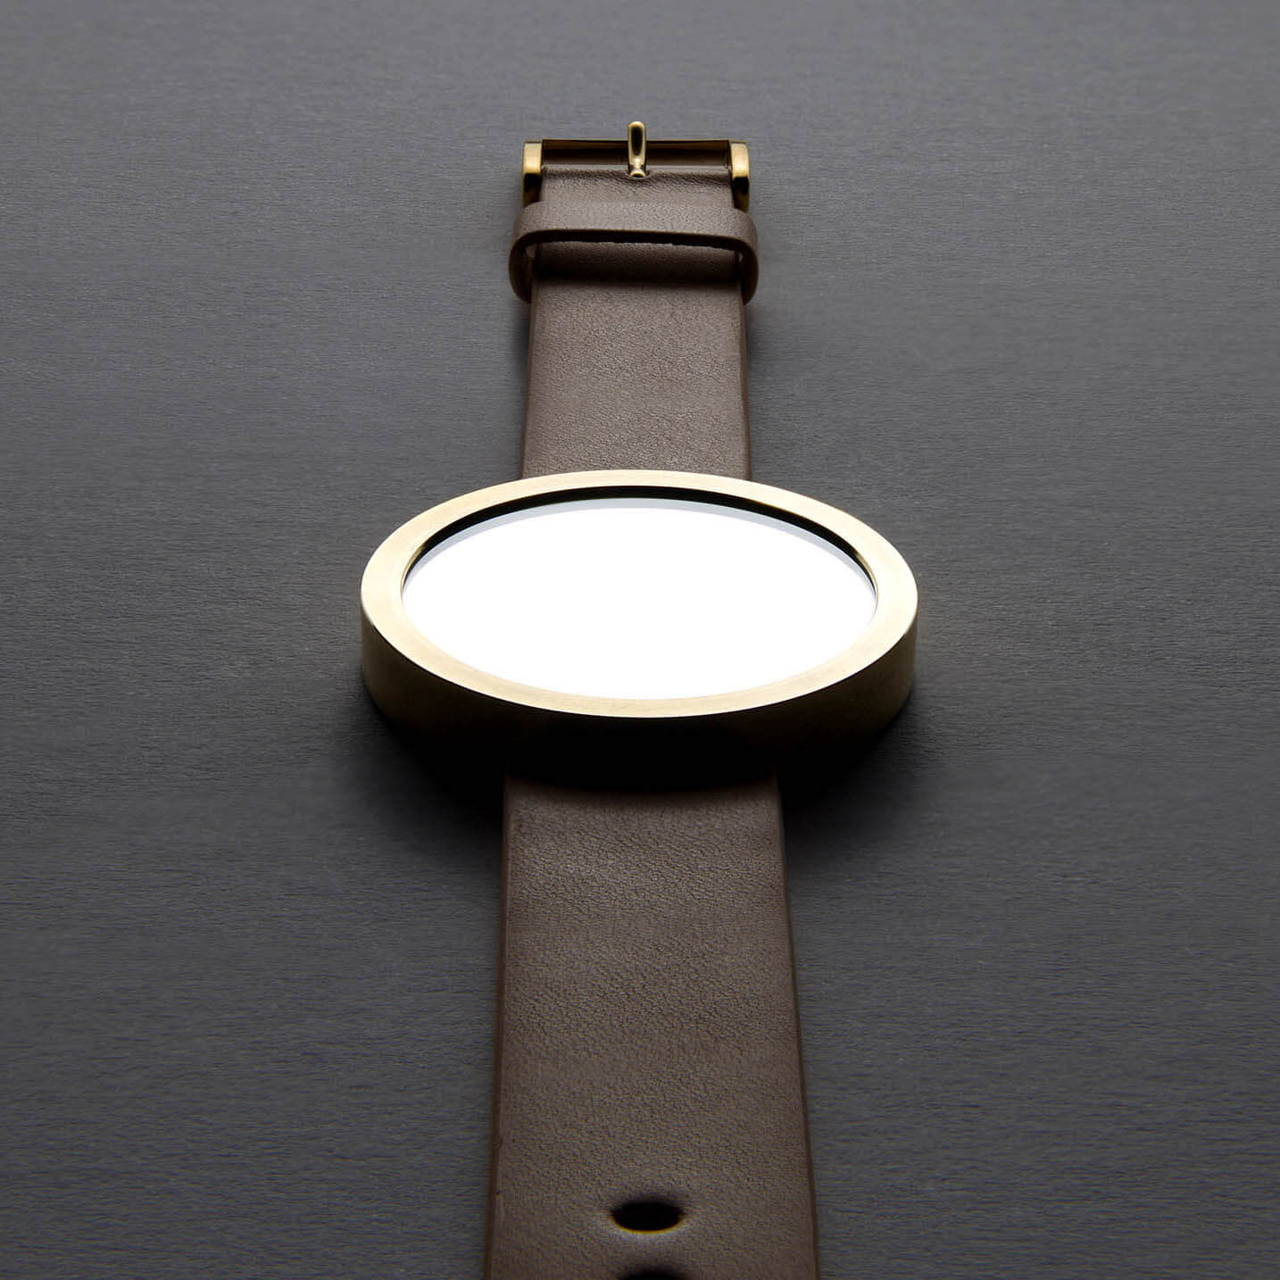 Timeless Wrist Mirror with Brass Case and Tan Leather Strap